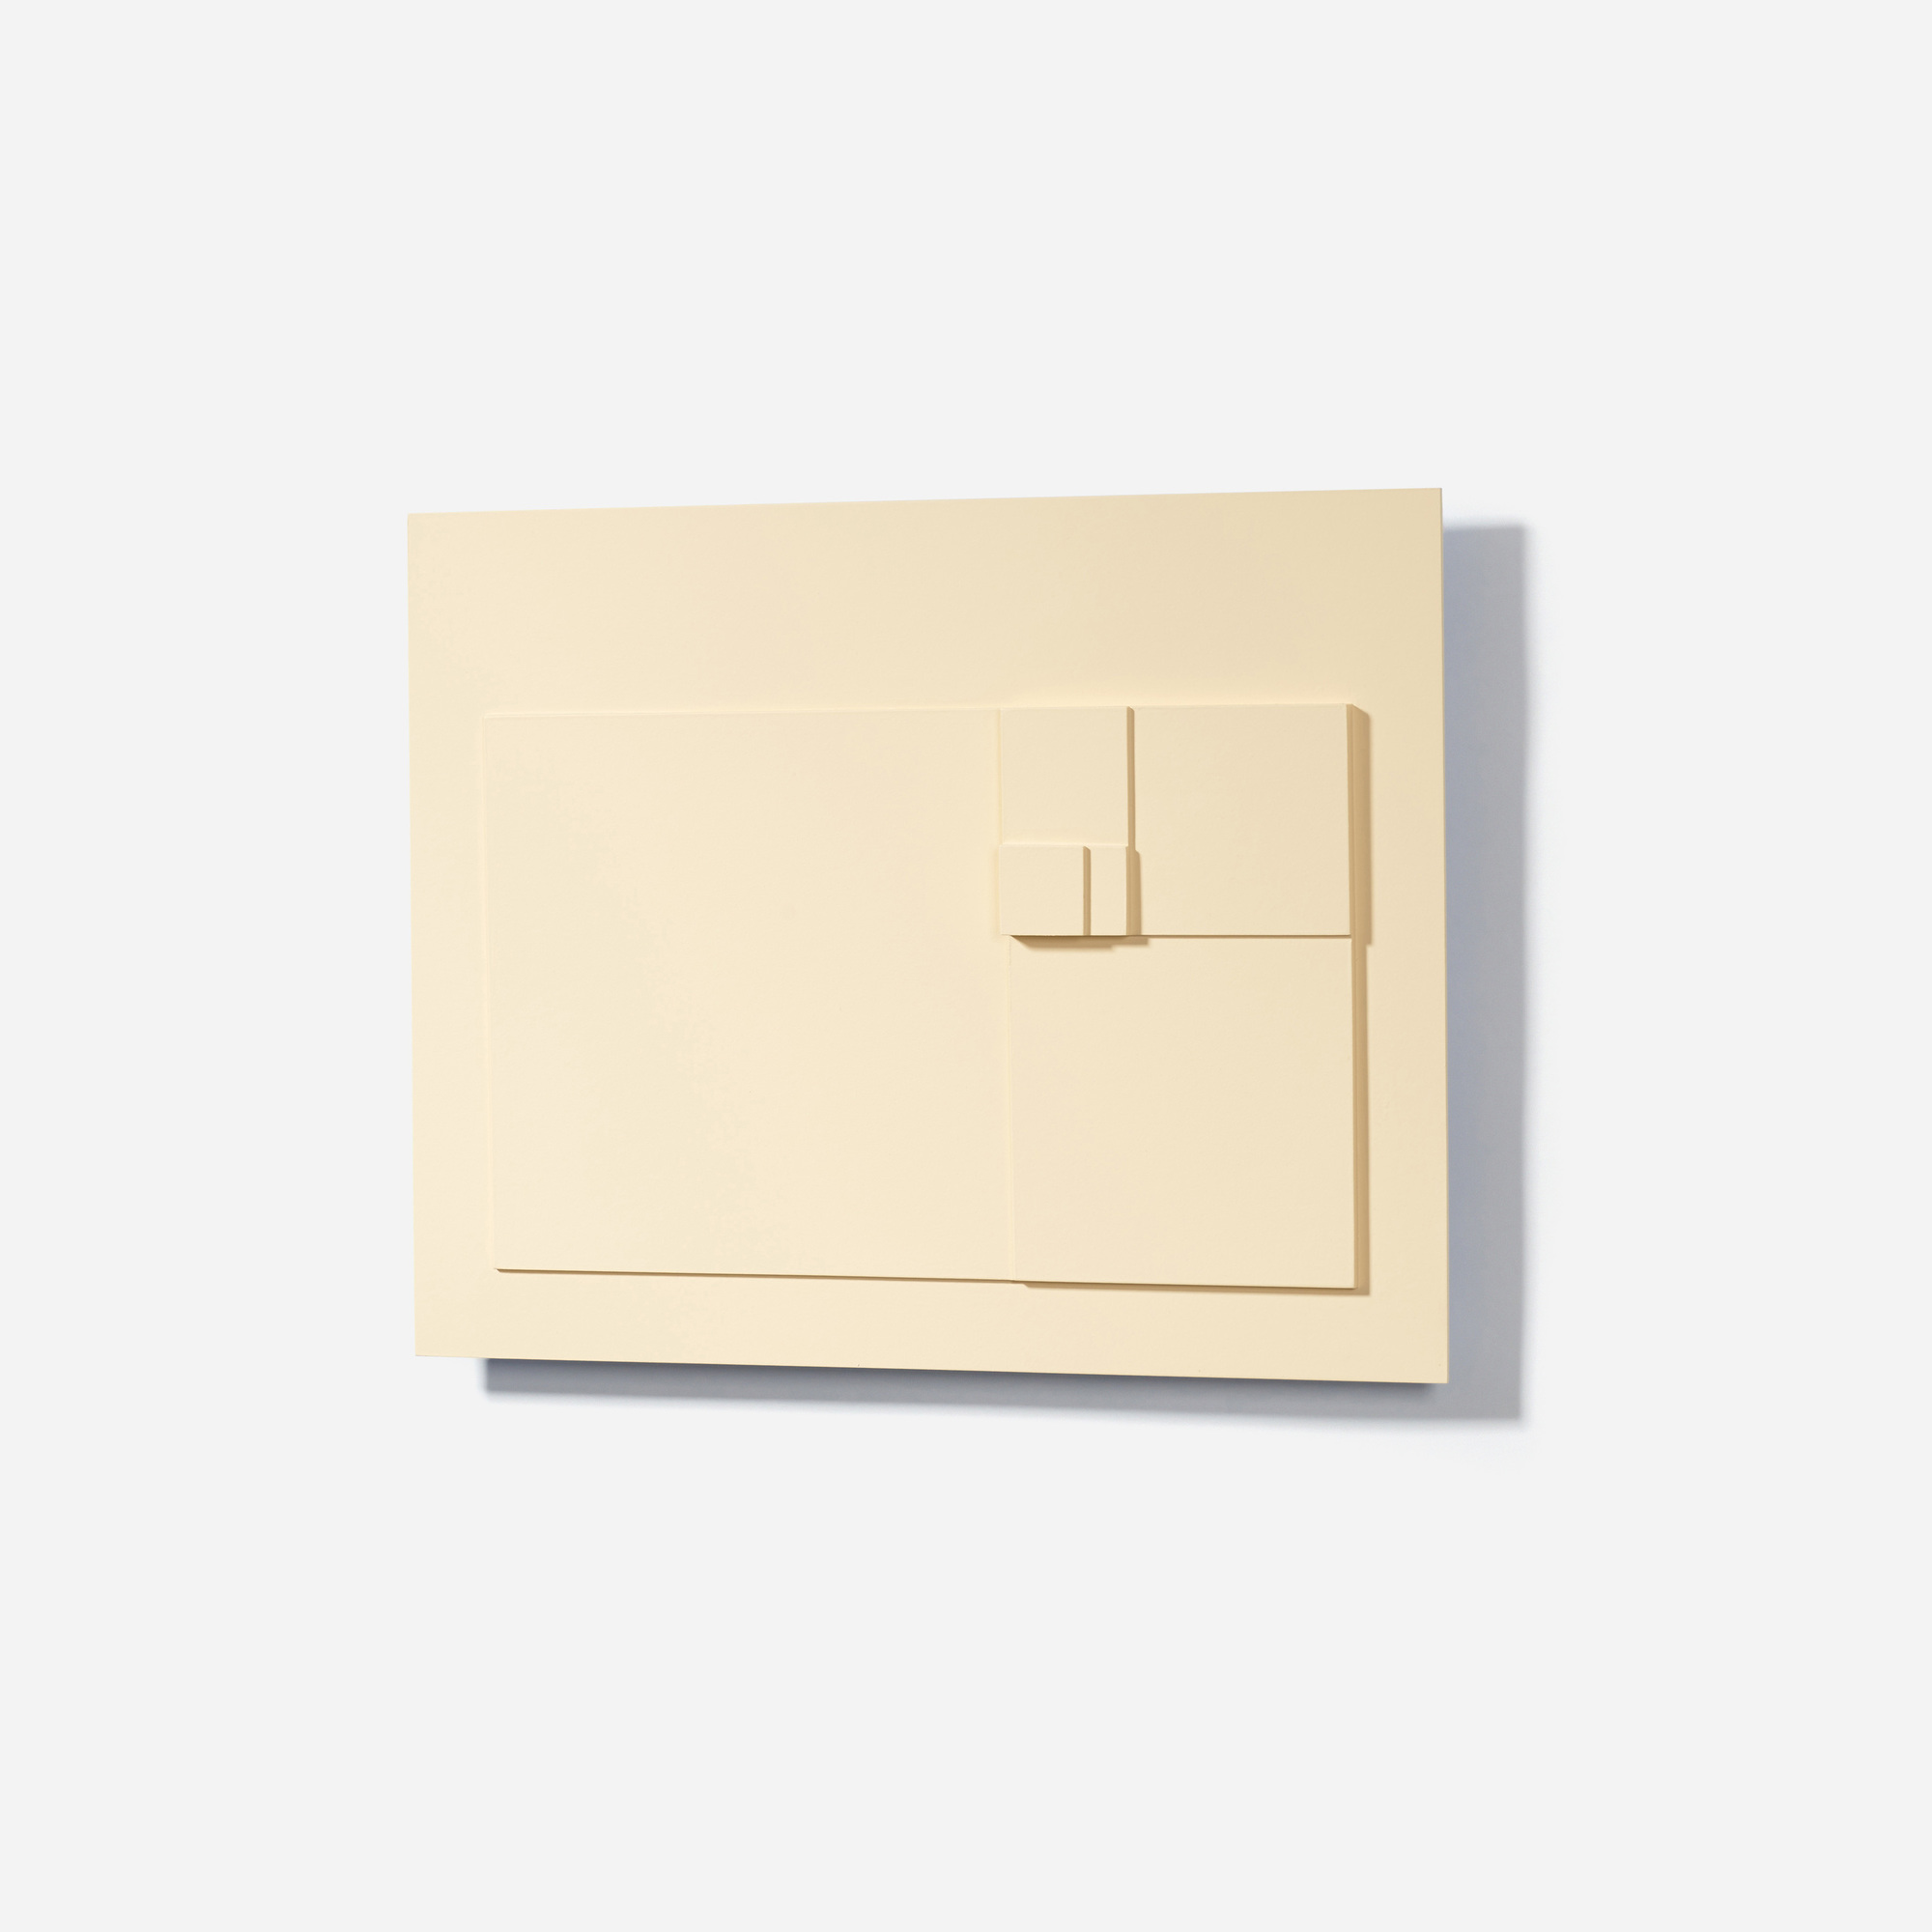 131: David Barr / Structurist Relief No. 343 (Reference to No. 20s) (2 of 3)